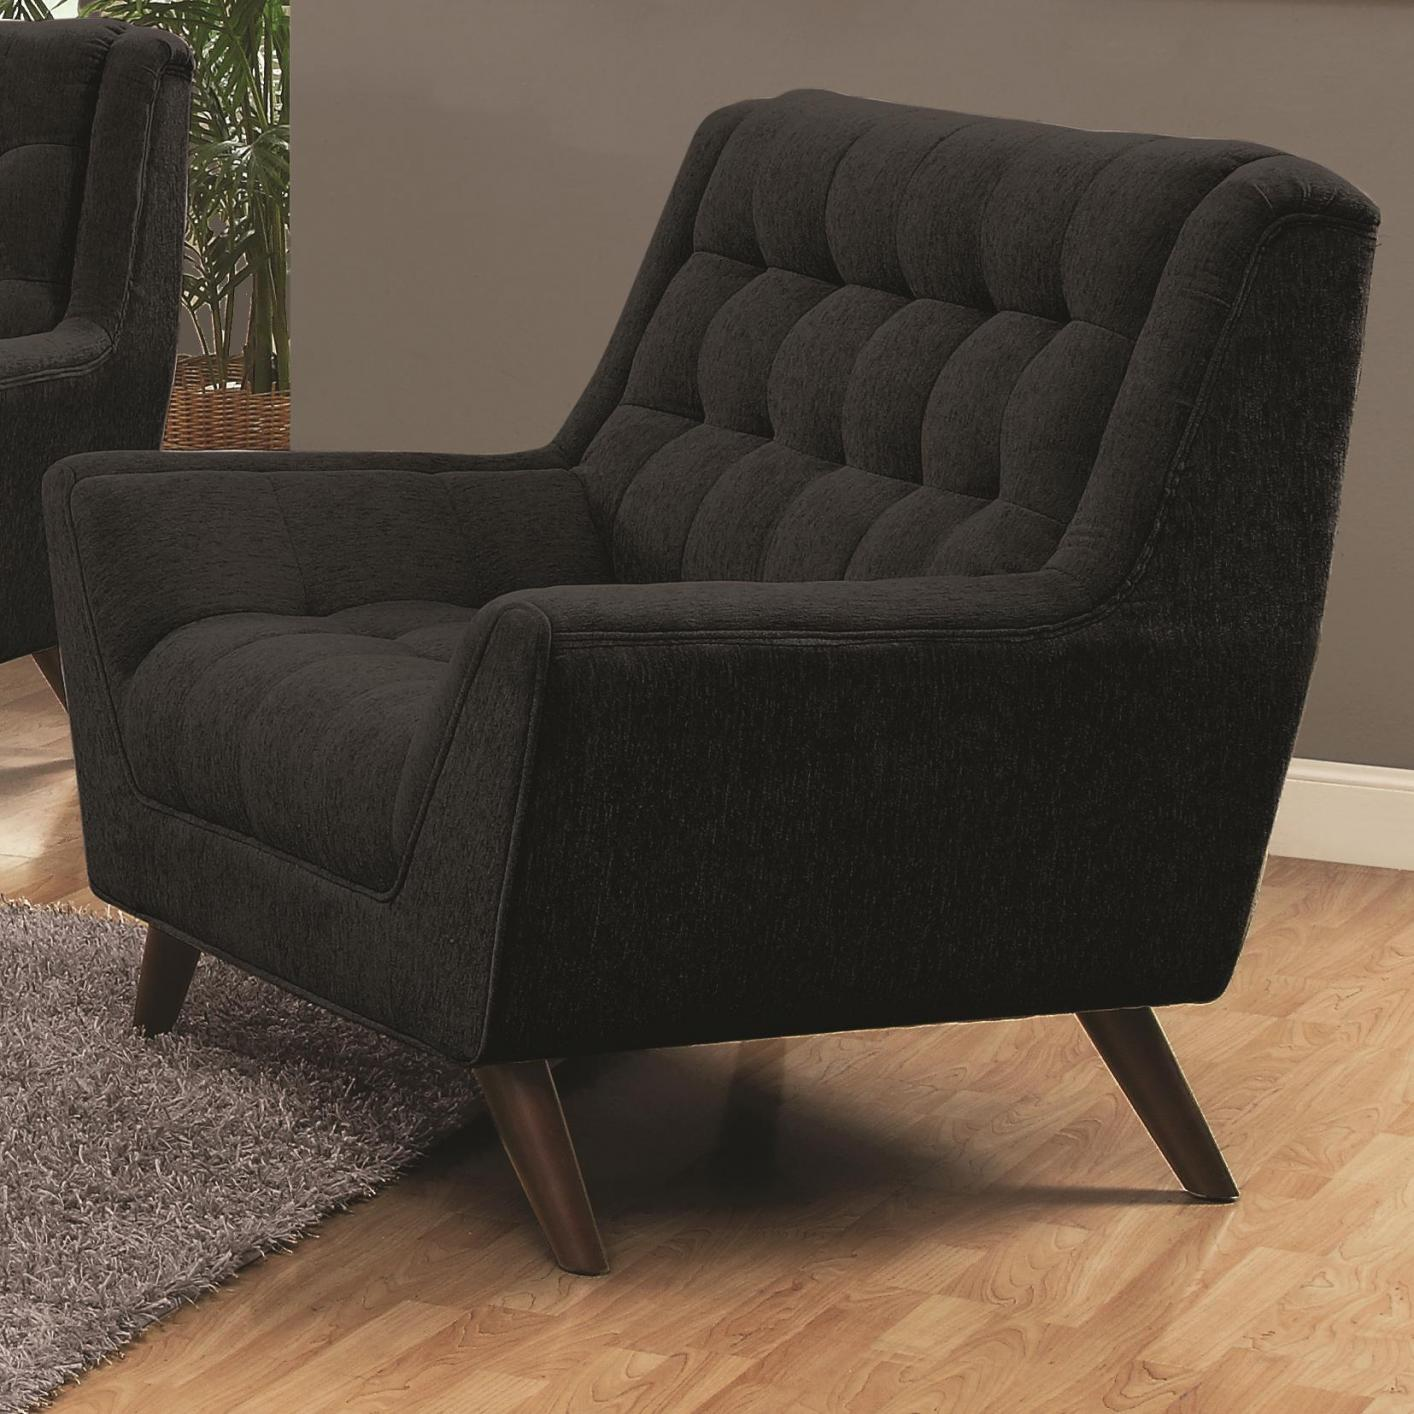 Natalia Black Fabric Chair - Steal-A-Sofa Furniture Outlet Los ...